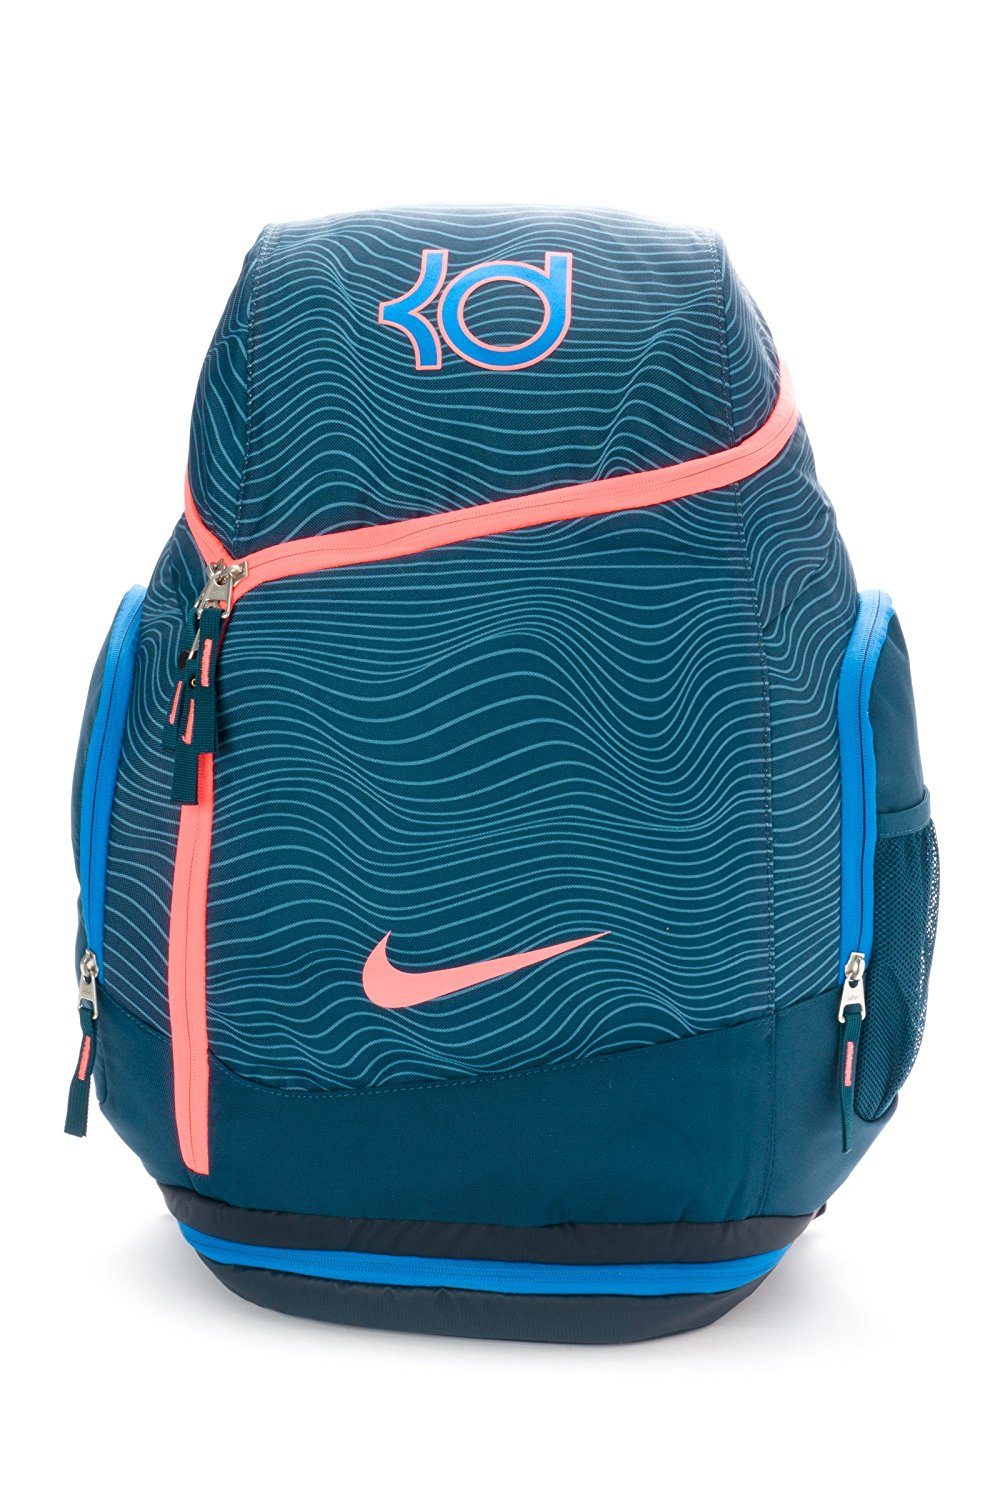 buy online ce152 8abc6 NIKE KD MAX AIR KEVIN DURANT Basketball Backpack Bookbag BA4853-448